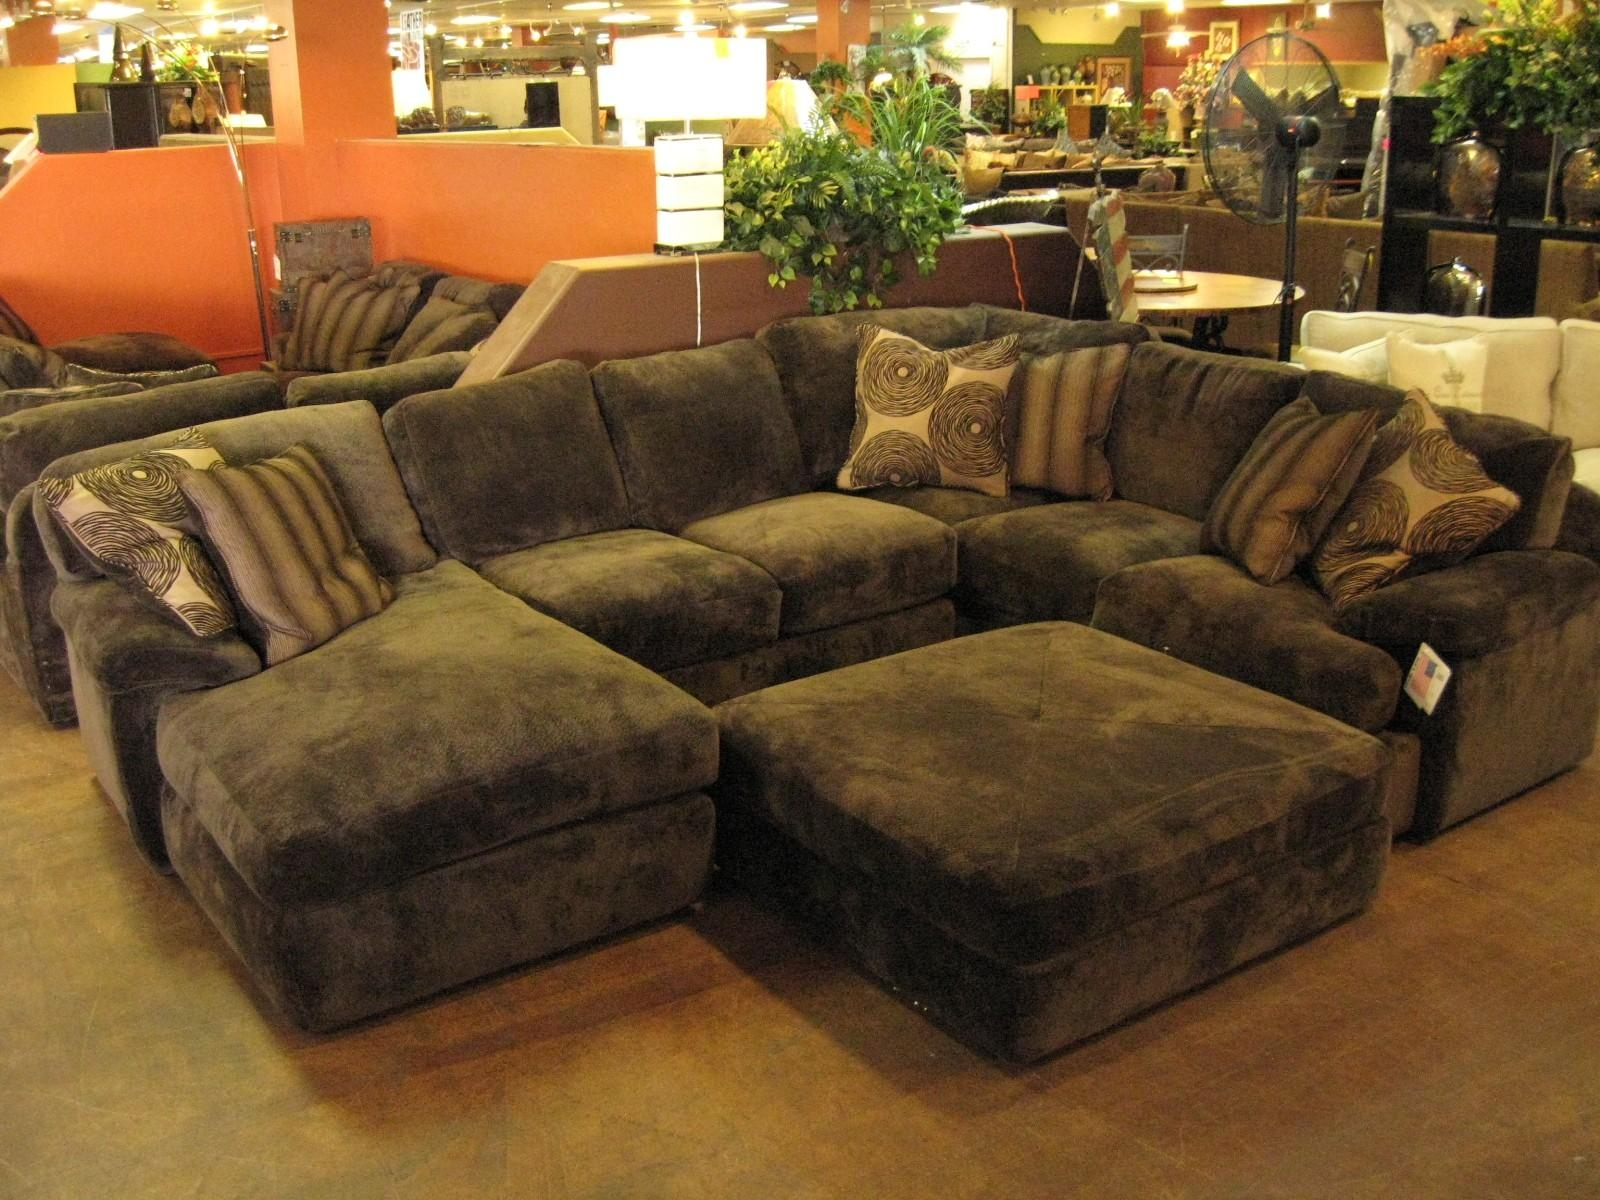 Ottoman Sectional Sofa Living Room – Ftfpgh With Sofa With Chaise And Ottoman (View 3 of 20)